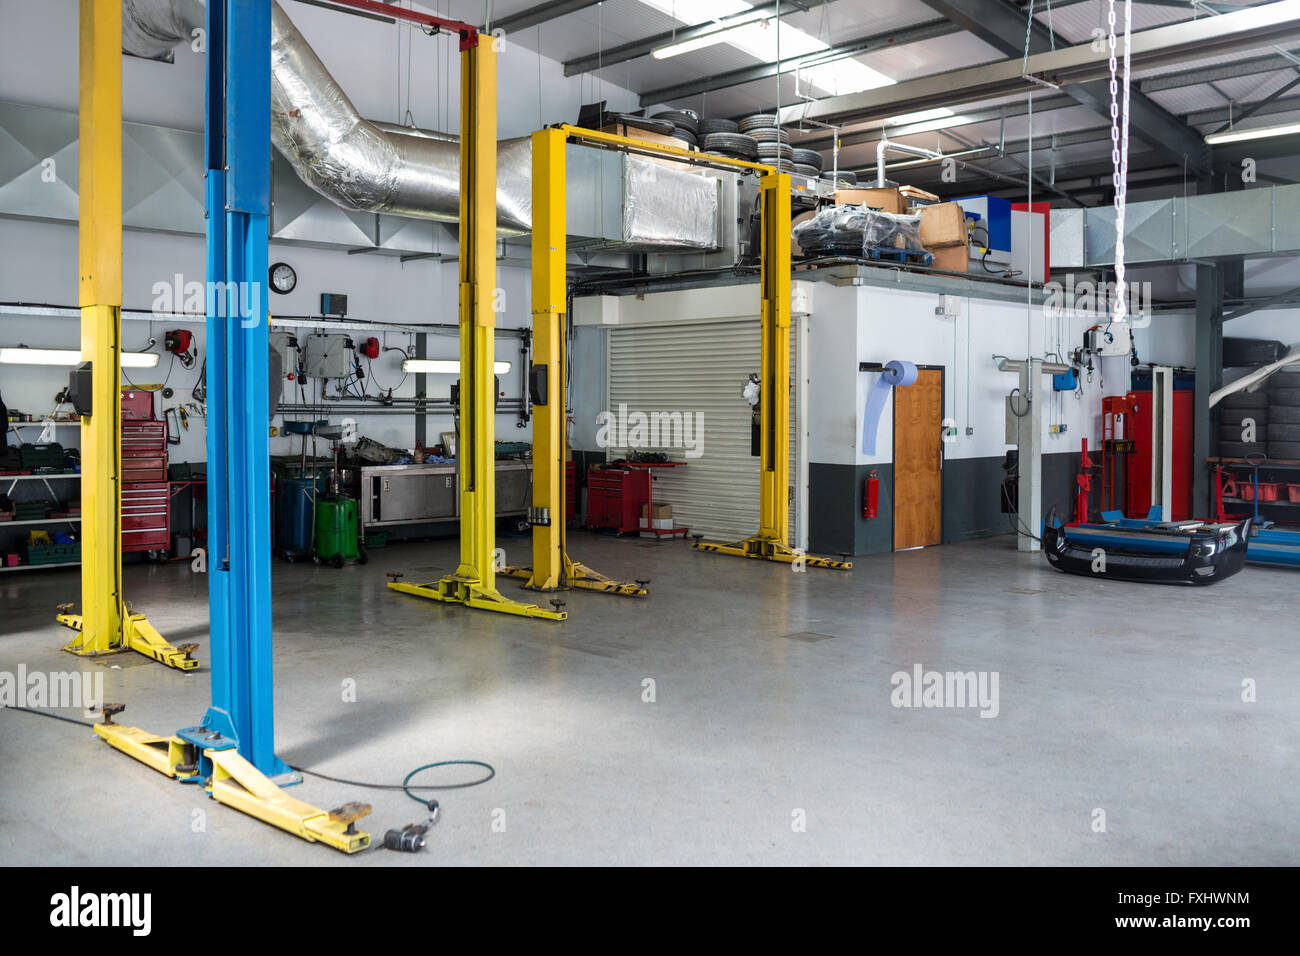 Auto repair garage stock photo 102426288 alamy for Garage reparation auto